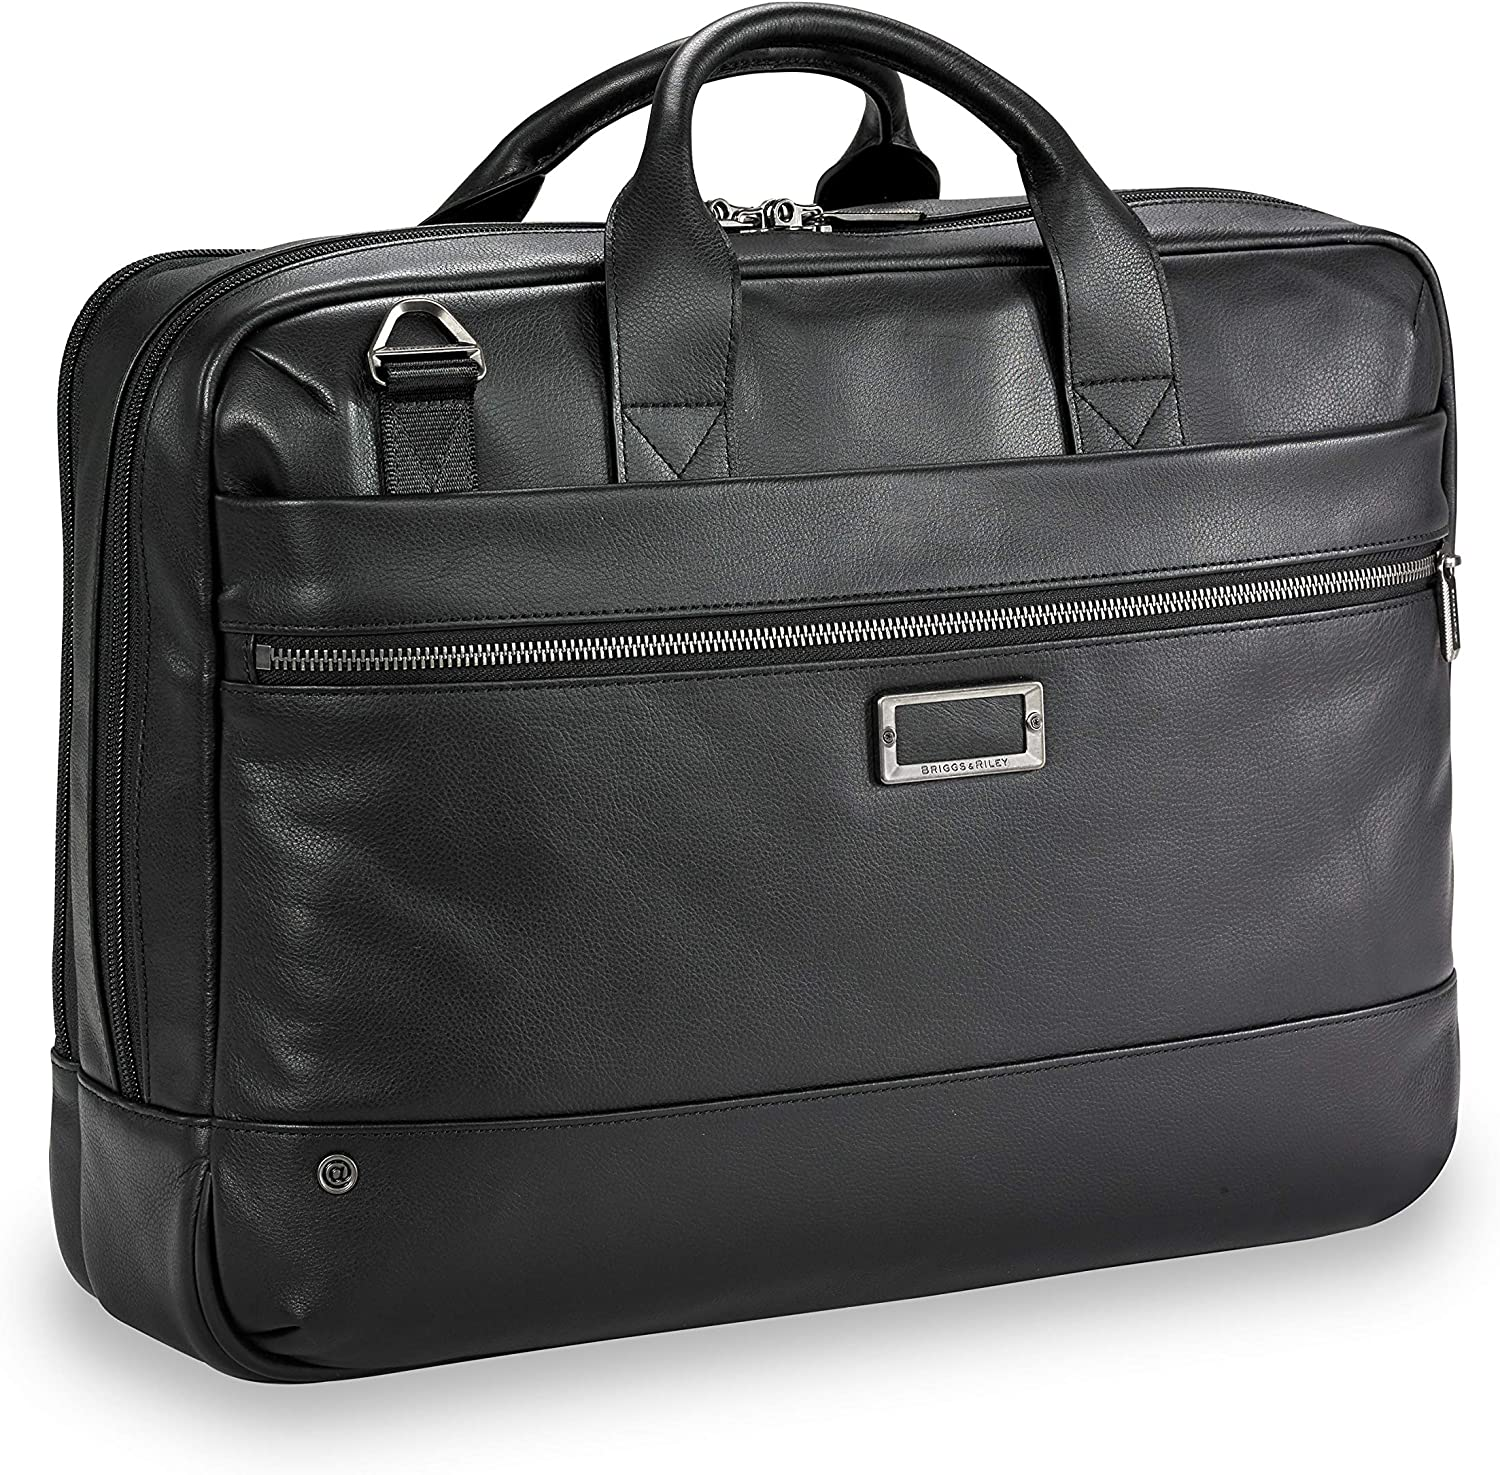 Briggs & Riley @ Work-Leather Brief, Black, Medium